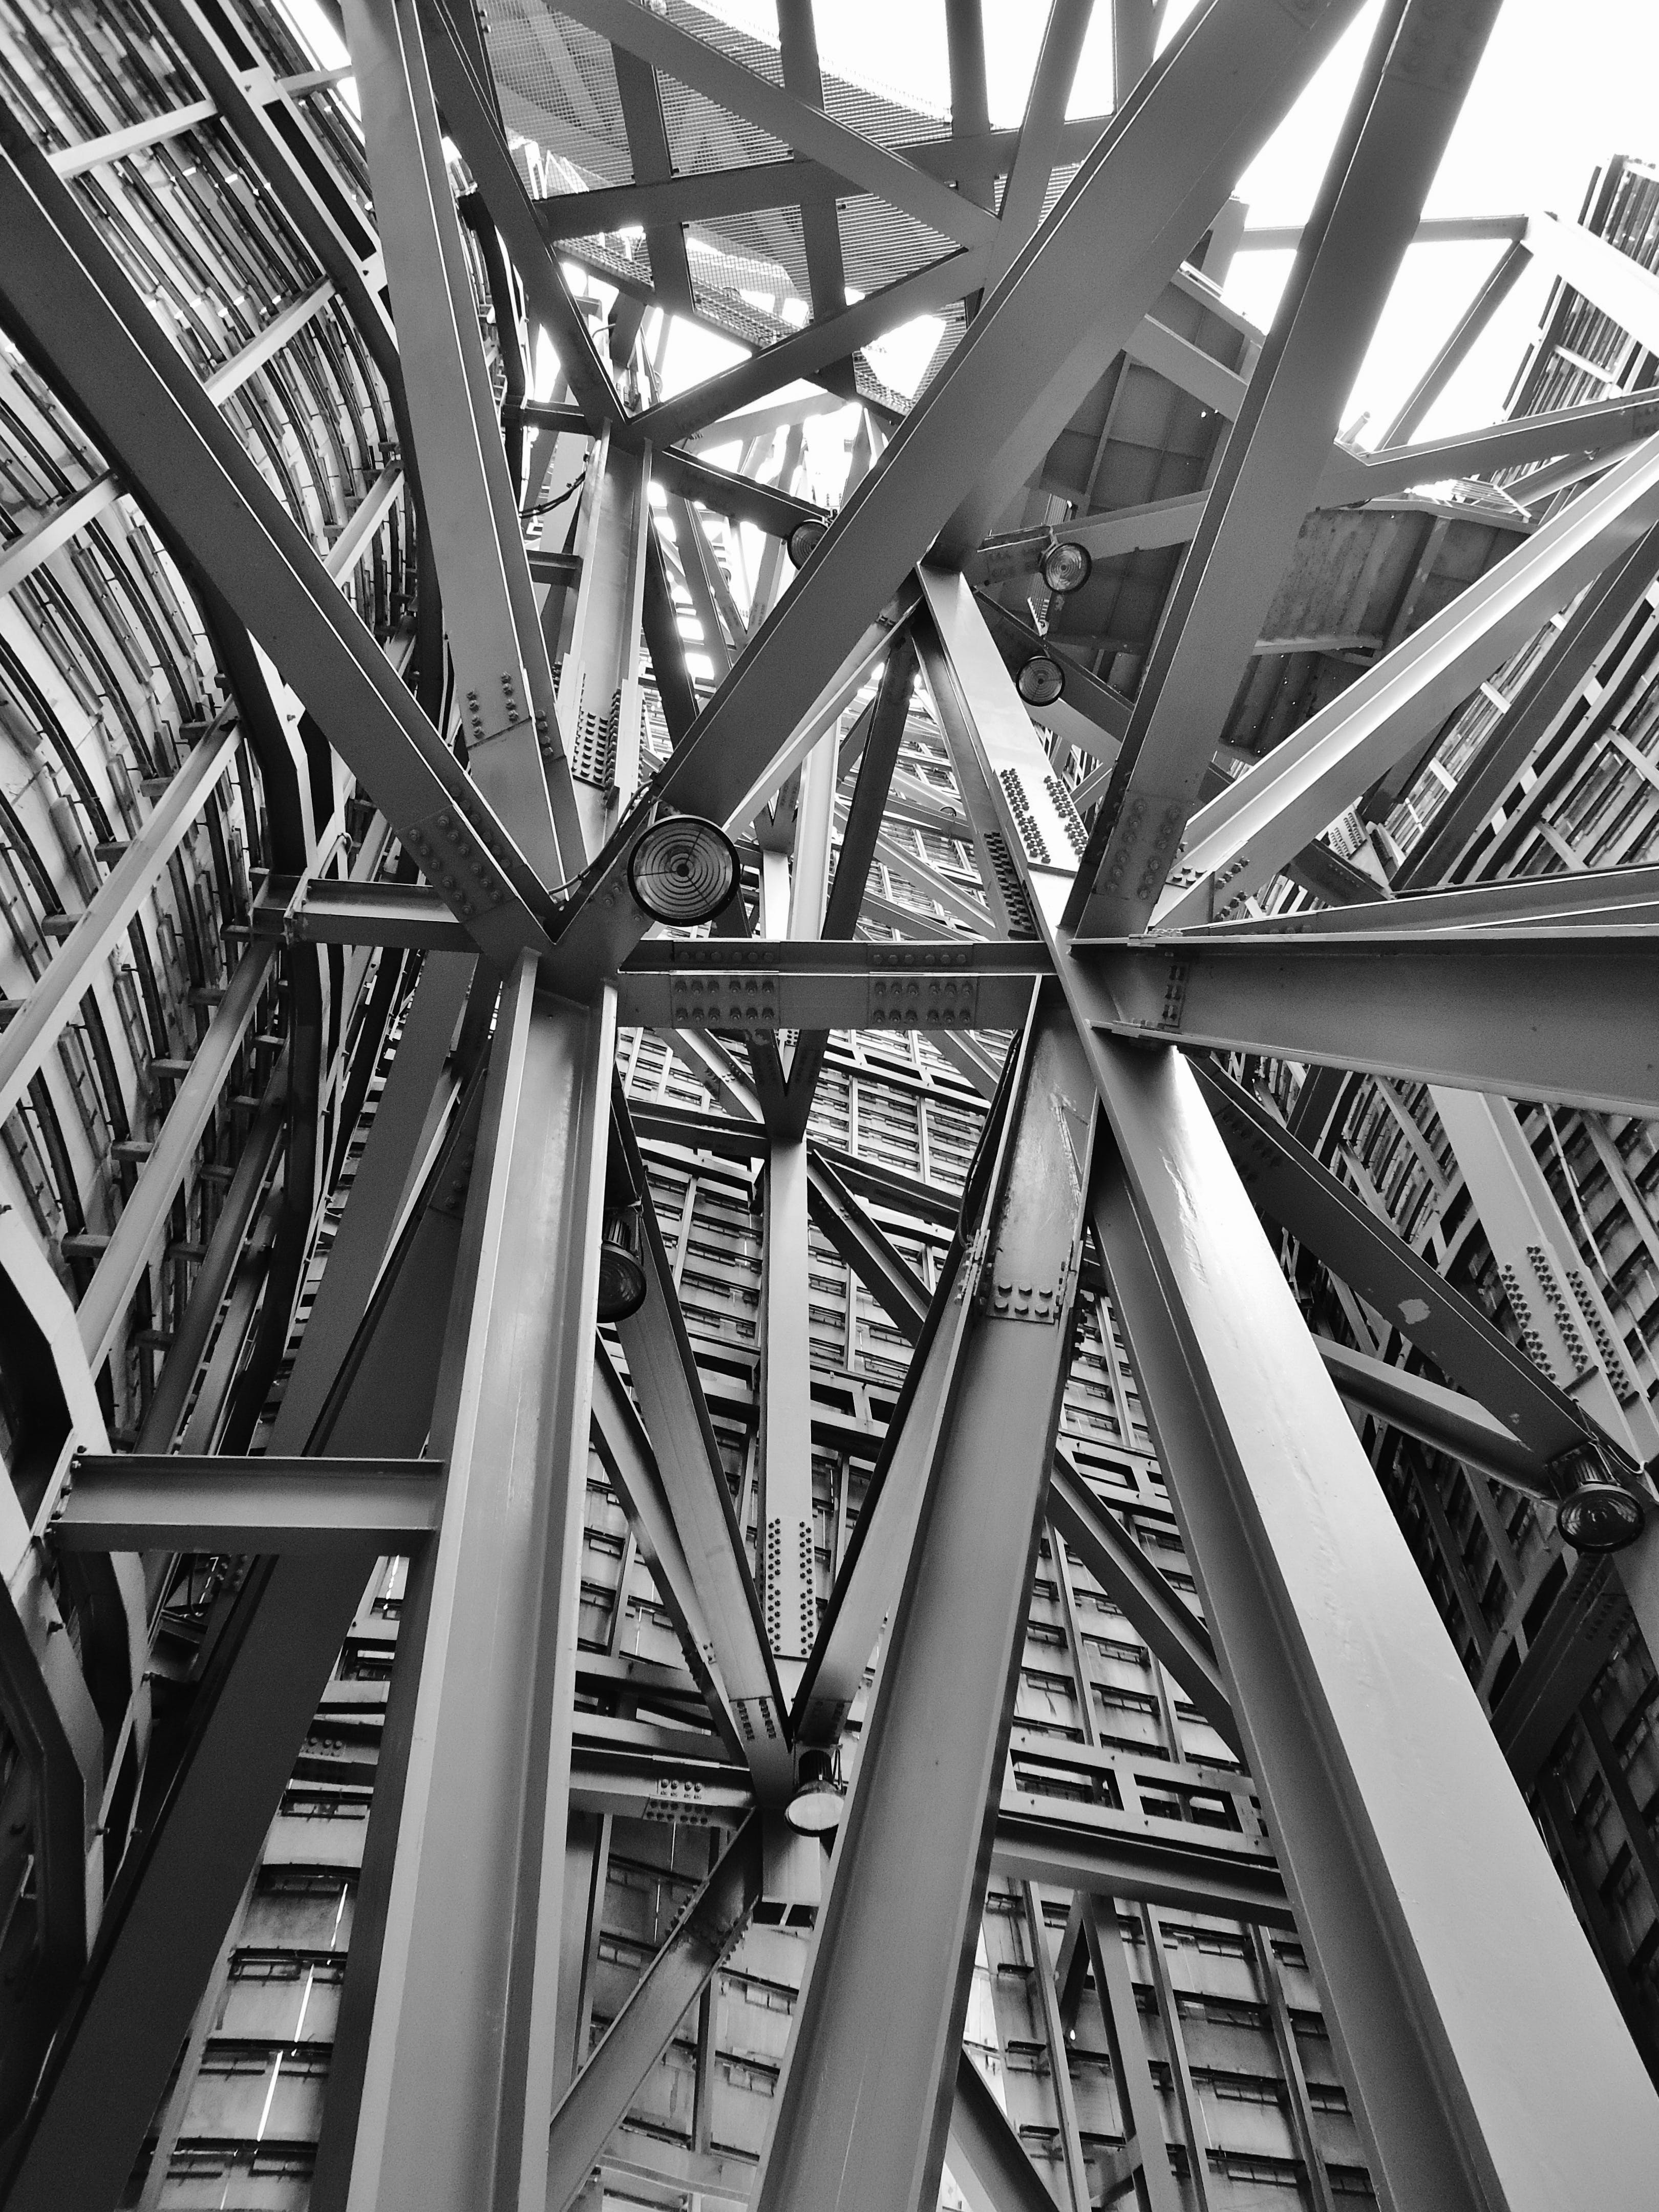 Grayscale Photography of Scafoldings